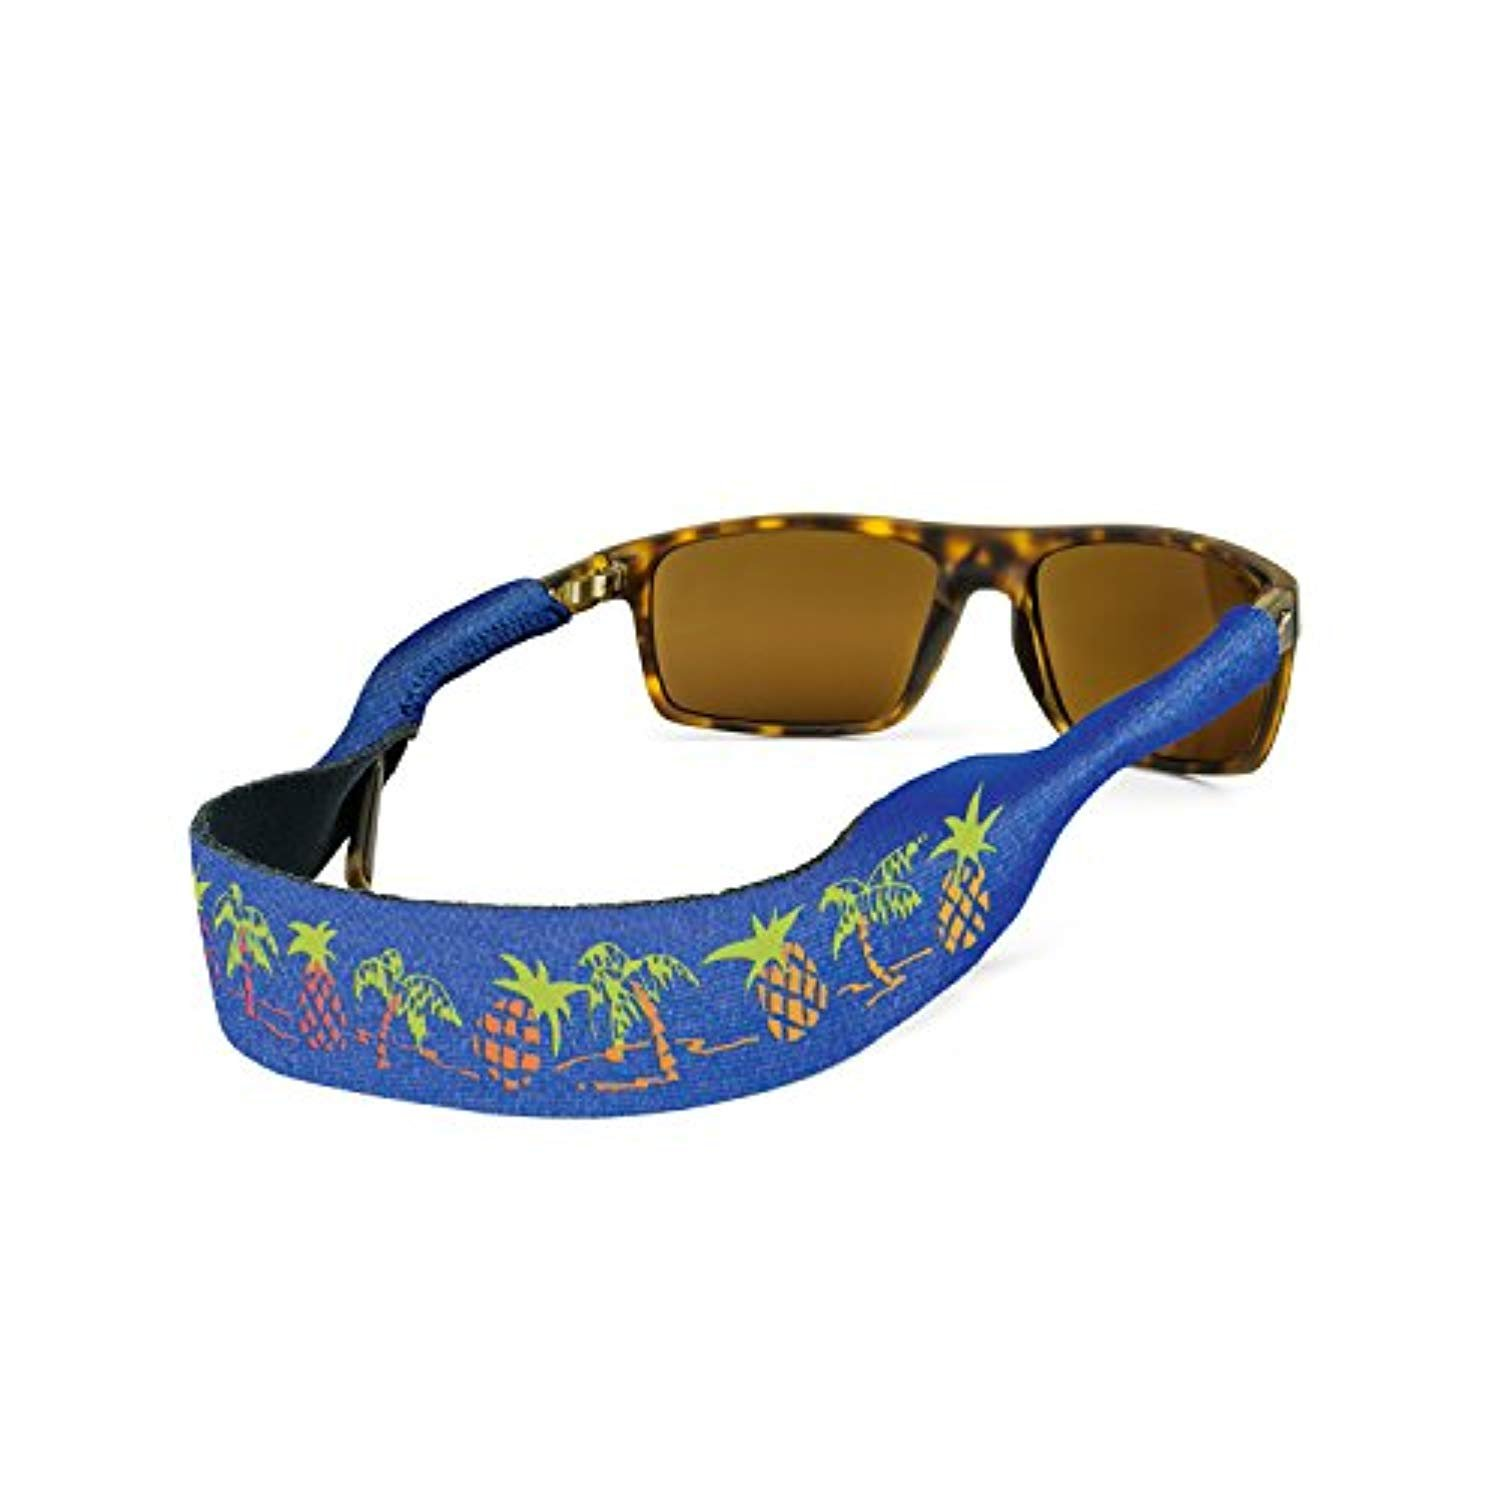 Croakies Heritage Pineapple XL 2-Pack by Croakies, USA